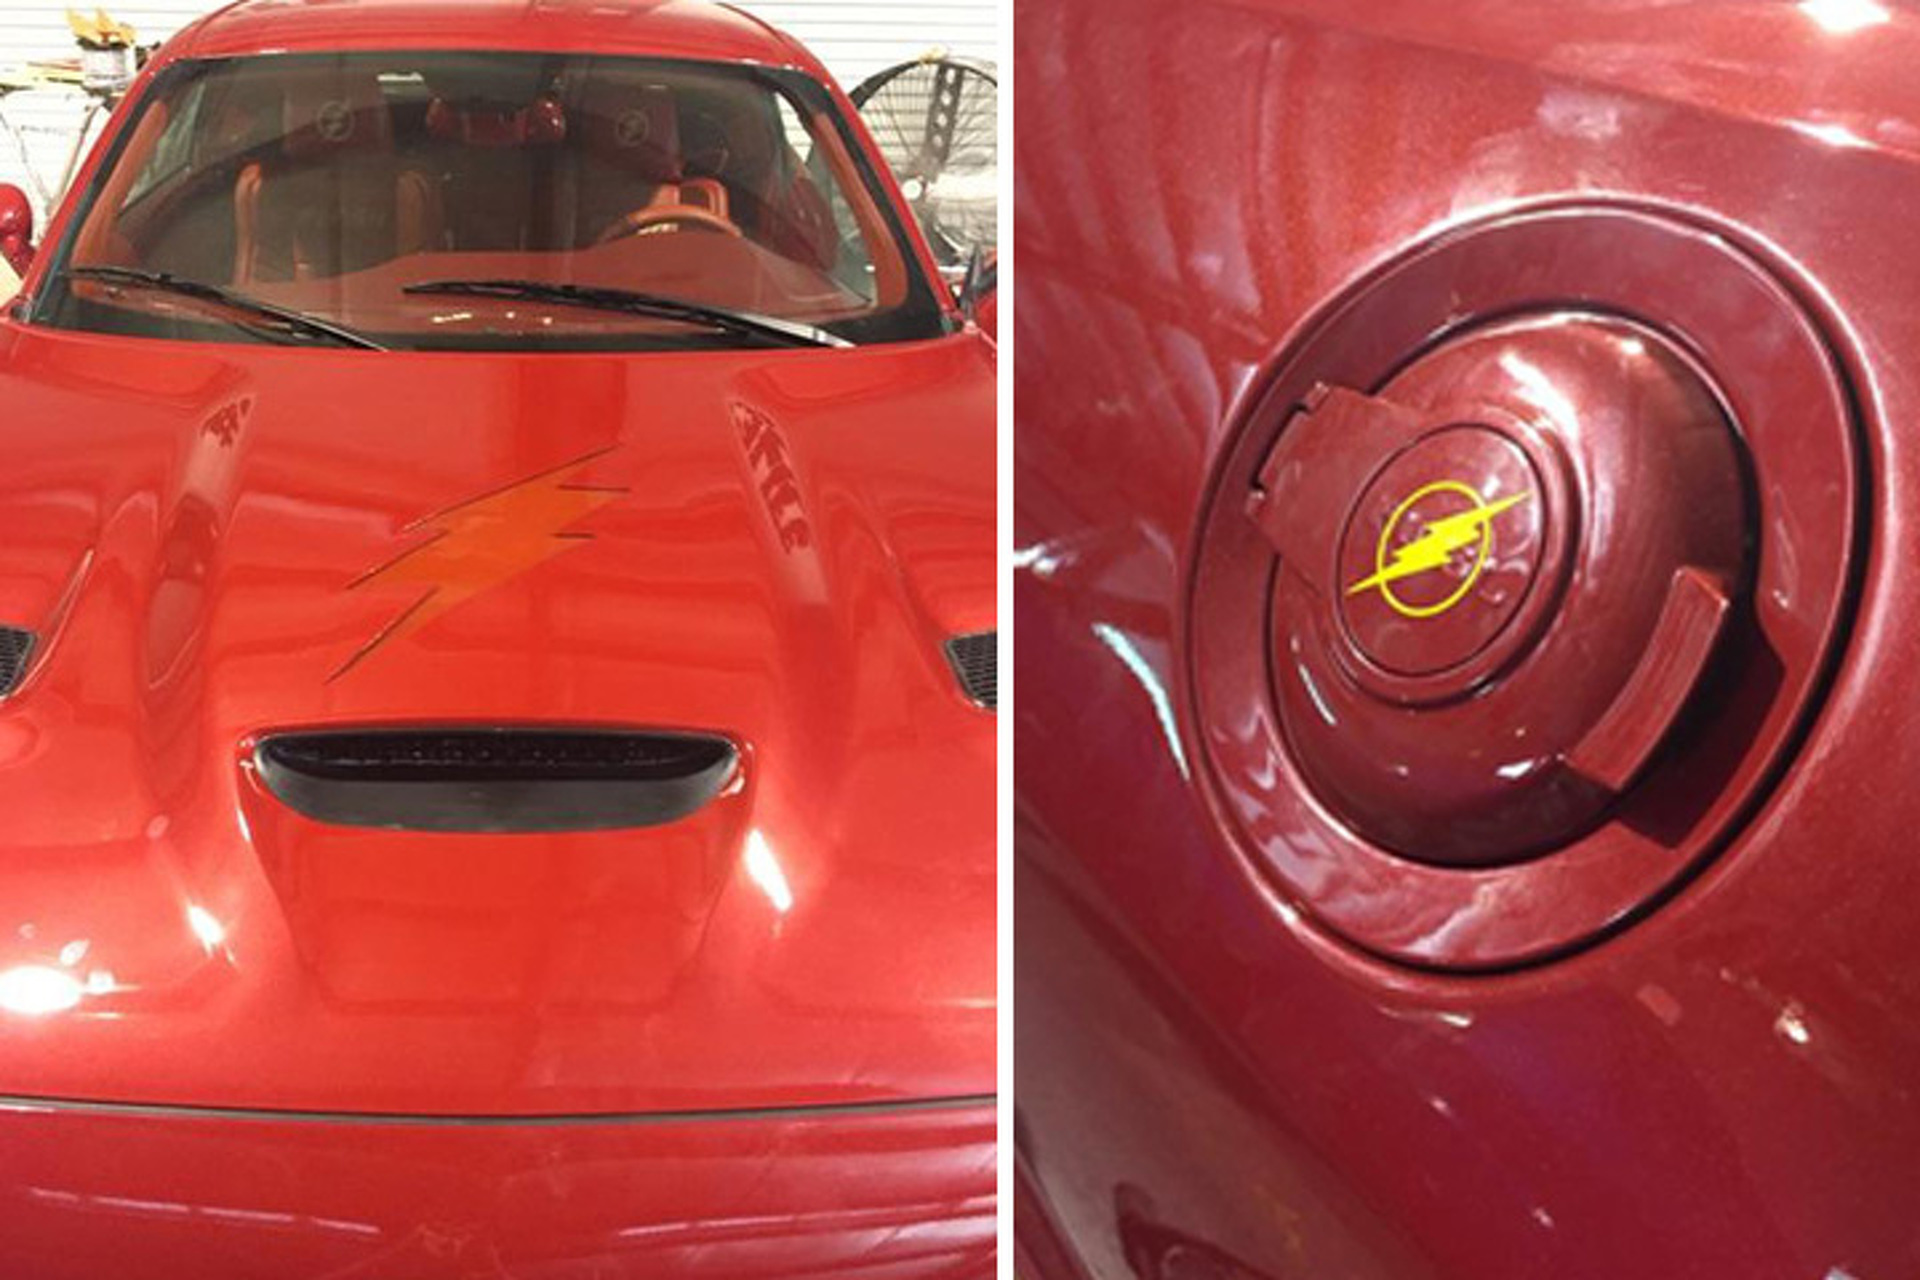 Dwight Howard Gave His Superhero-Themed Challenger Hellcat a Fitting Name